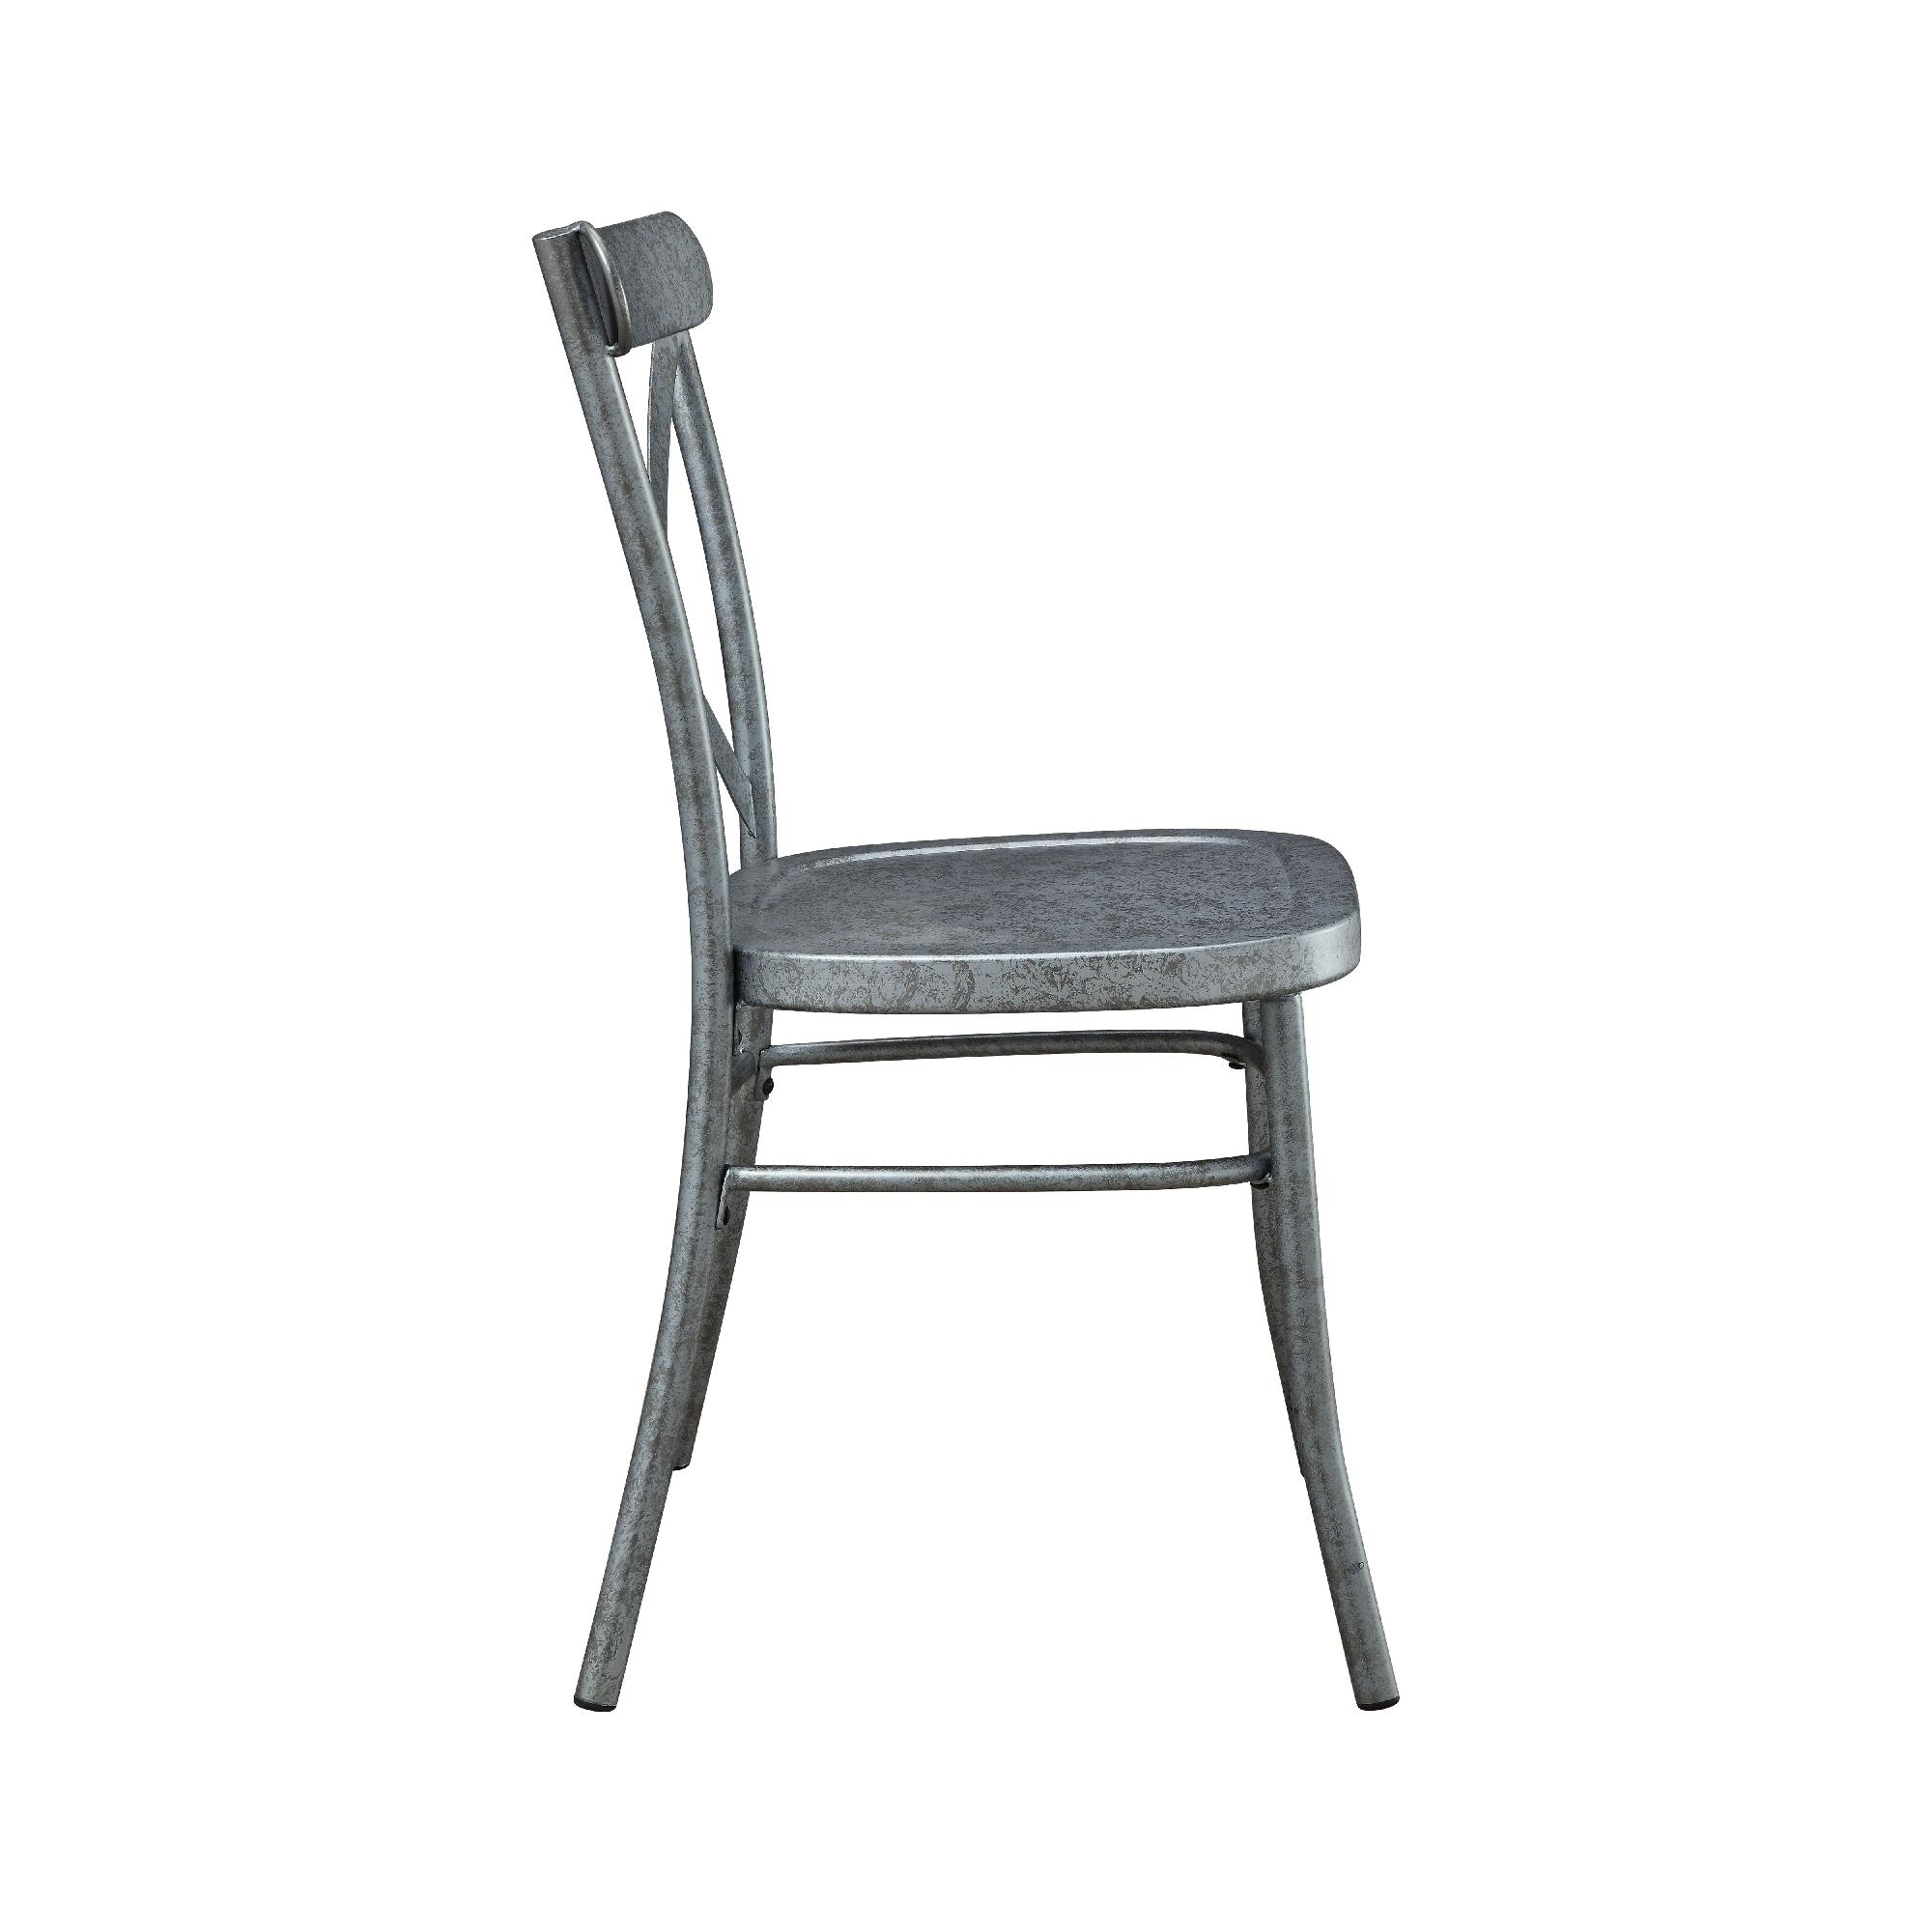 Better Homes And Gardens Maddox Crossing Dining Chair Set: Better Homes And Gardens Collin Silver Dining Chair, 2